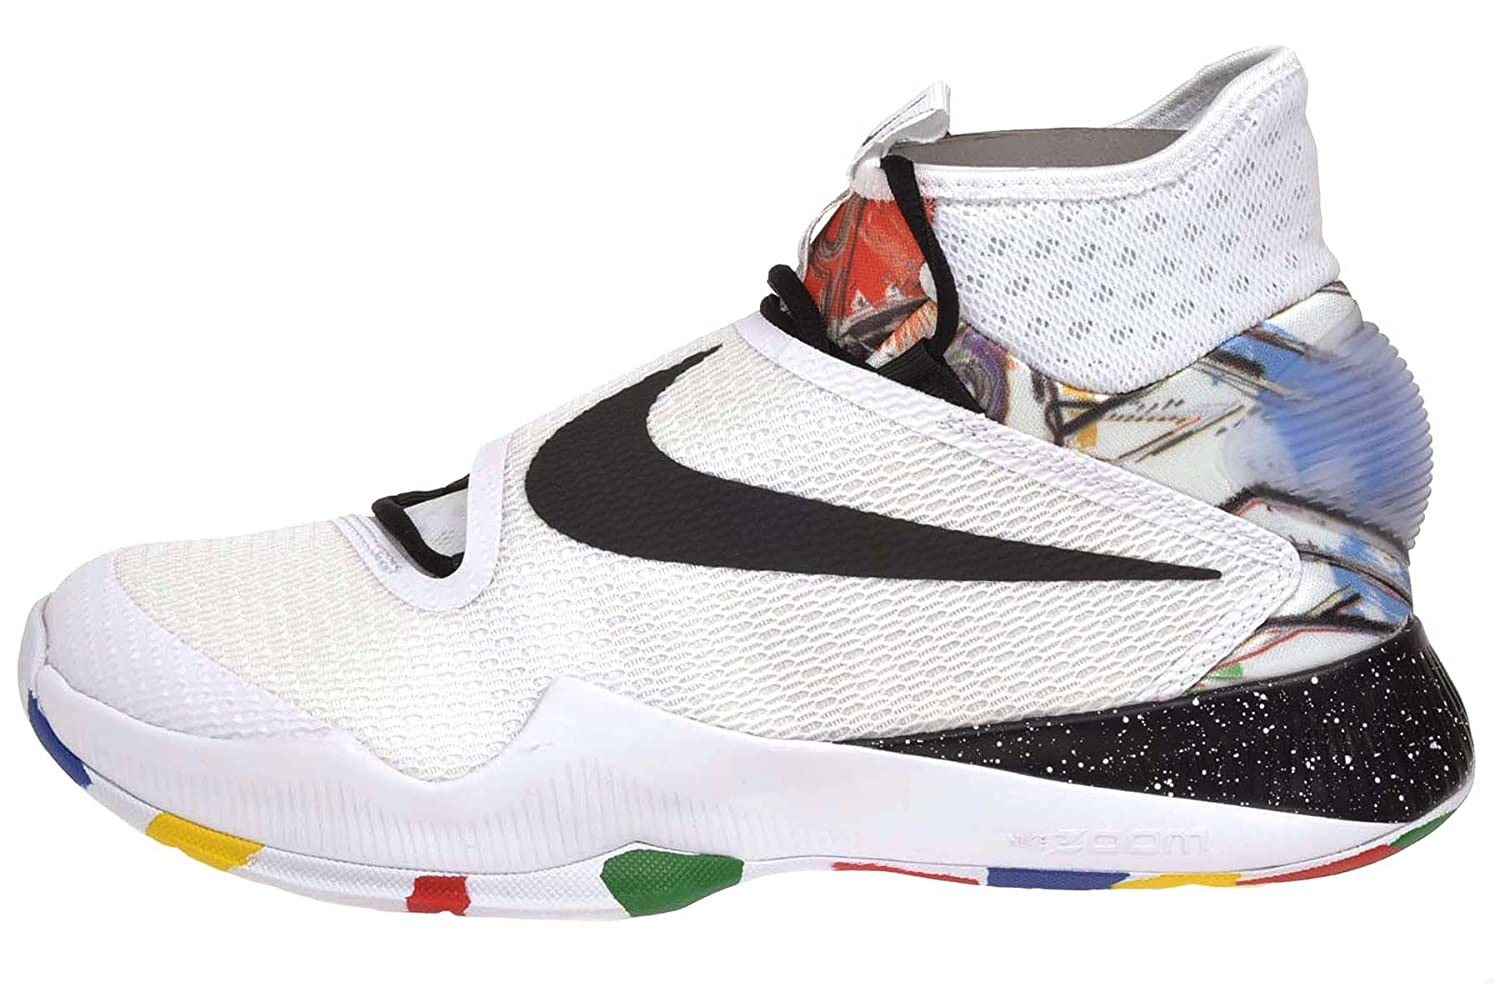 b9c22767a40 new Nike Zoom Hyperrev 2016 Lmtd Sz 11 Mens Basketball Shoes White New In  Box